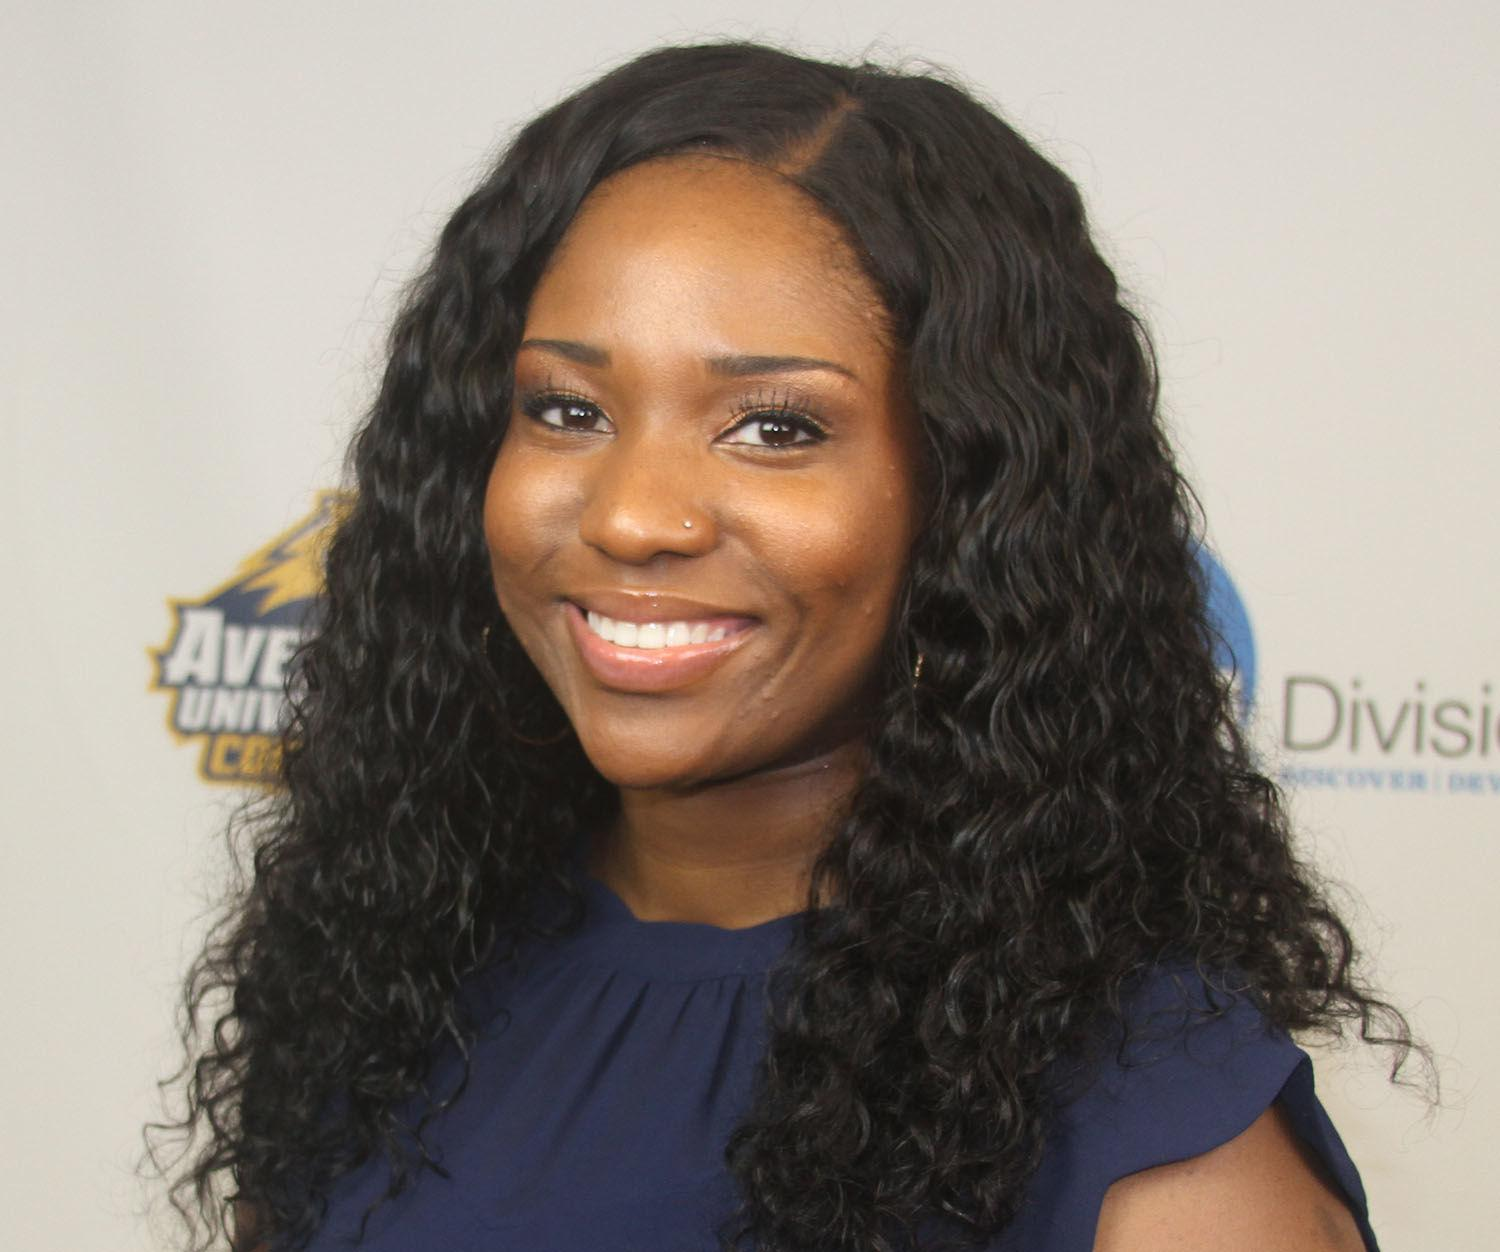 Alexis Harris has been named the Head Coach for the new dance team.